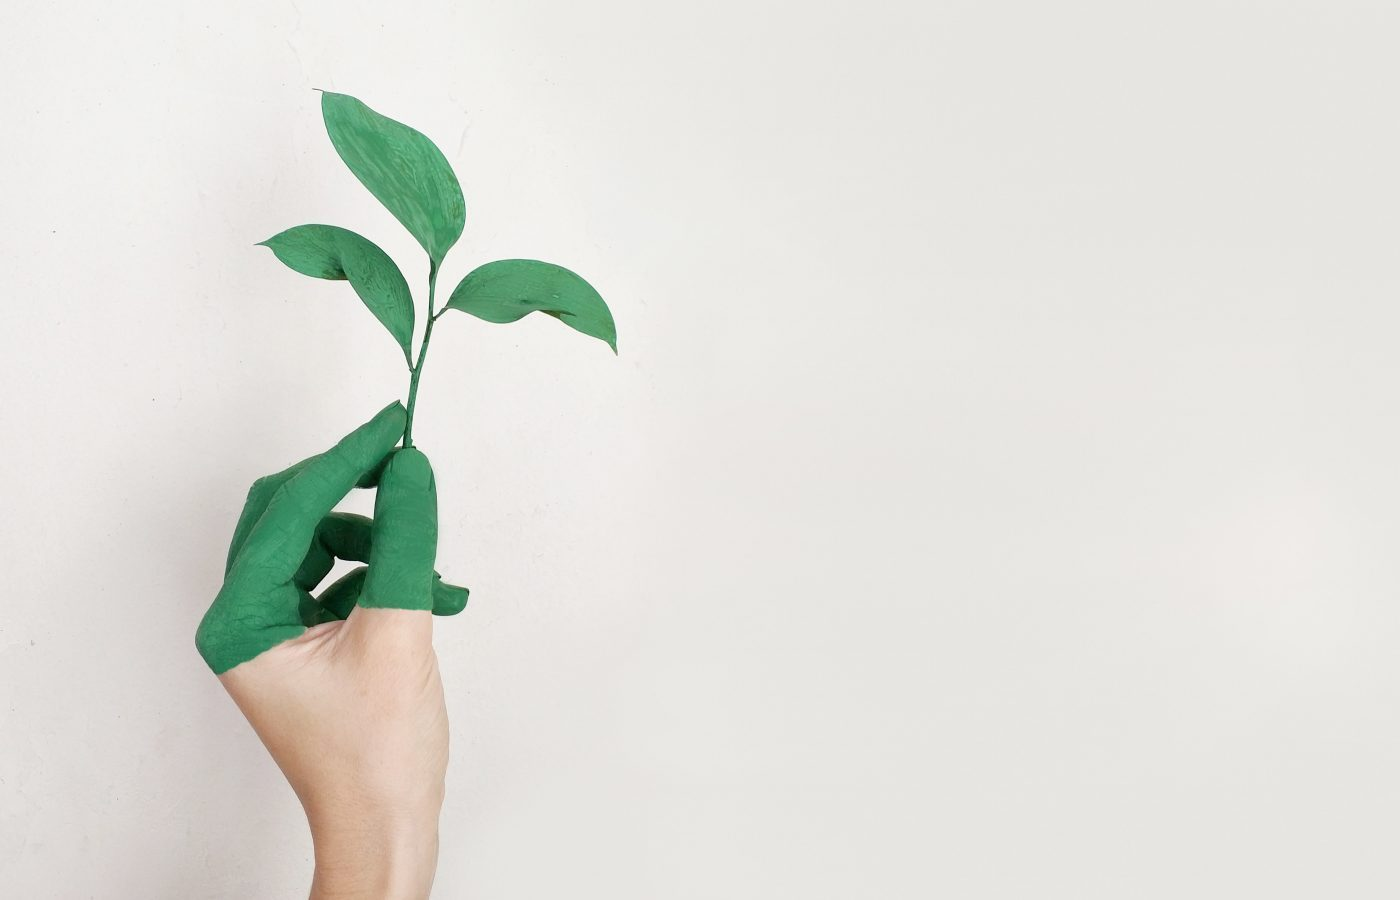 Hand holding up a plant